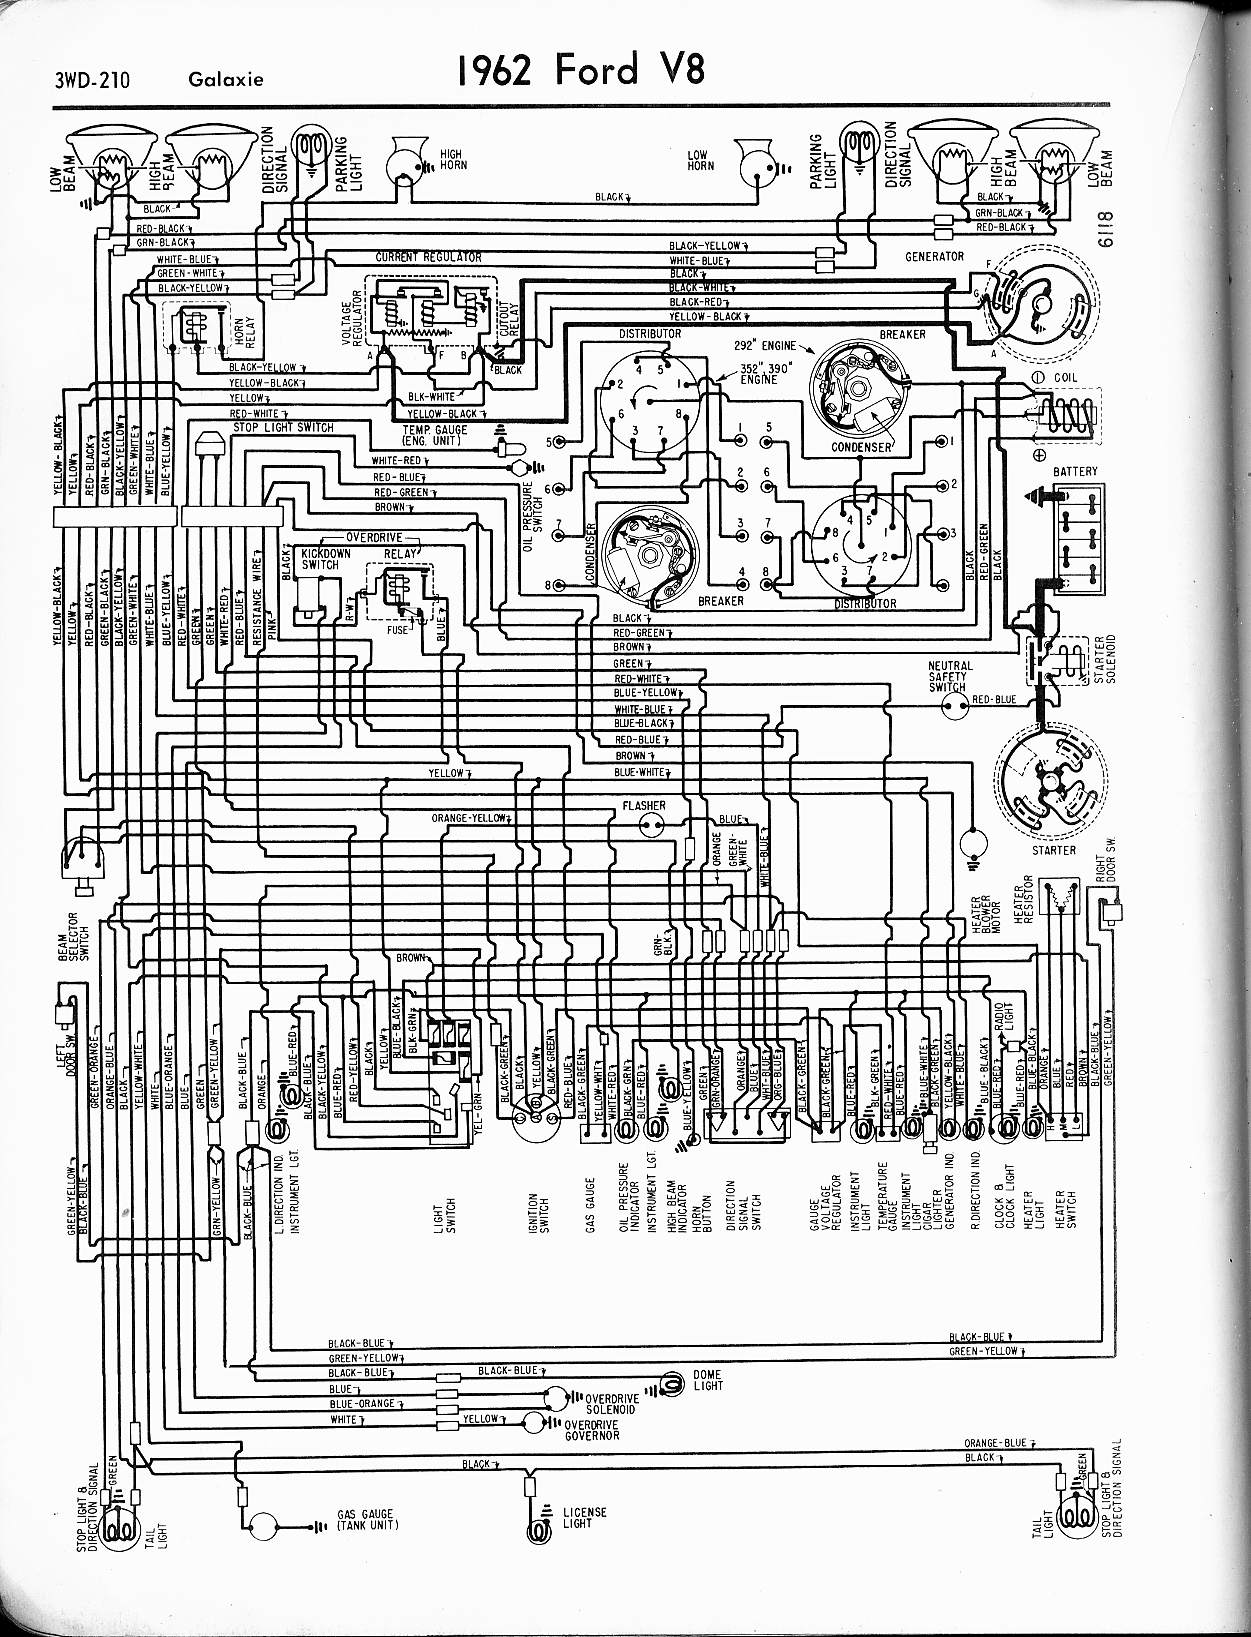 MWire5765 210 57 65 ford wiring diagrams